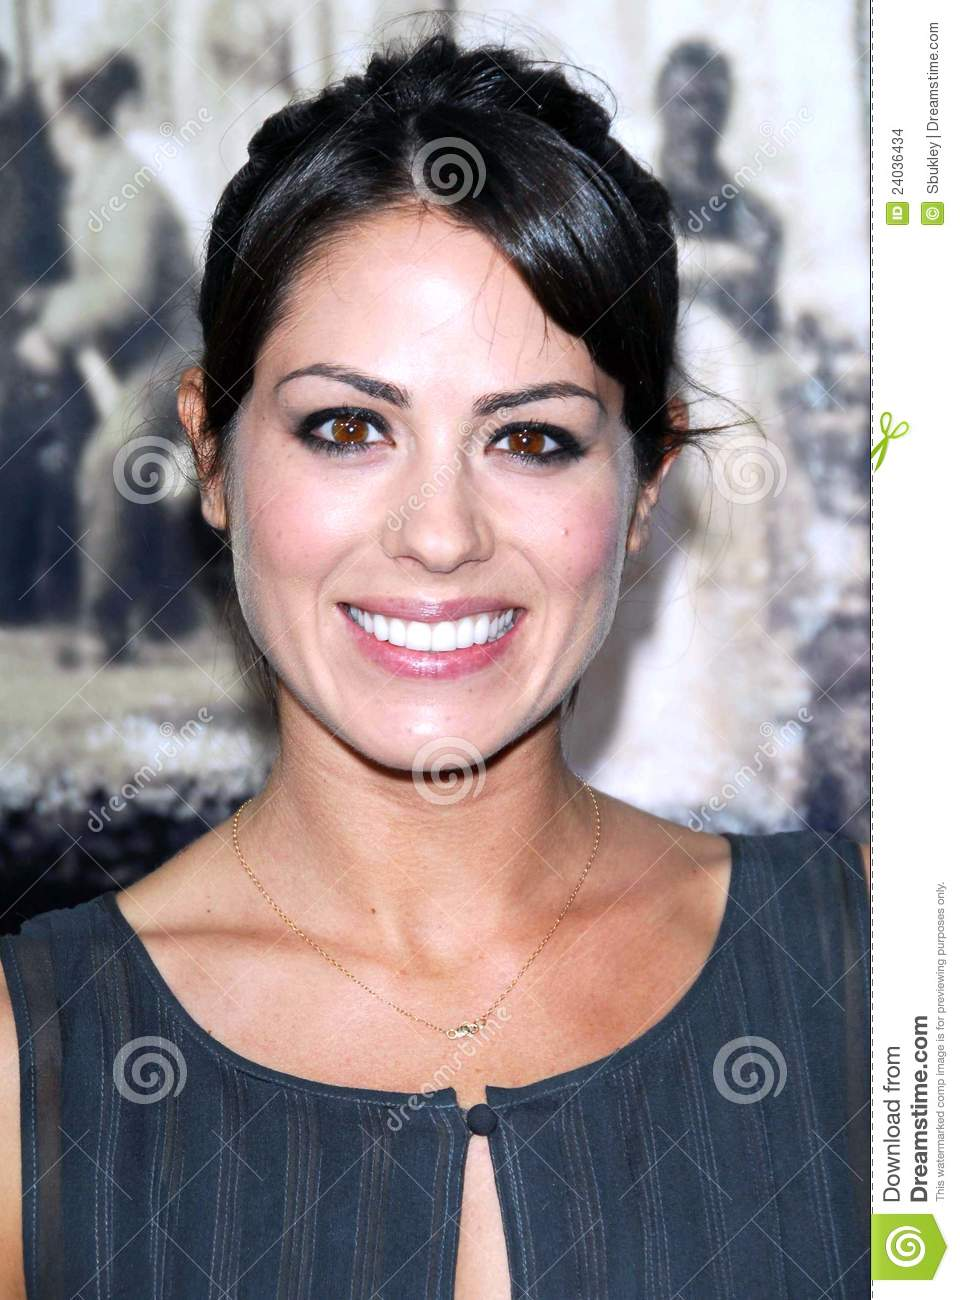 michelle borth hawaii 5-0michelle borth on hawaii five o, michelle borth кинопоиск, michelle borth insta, michelle borth, michelle borth hawaii five 0, michelle borth wiki, michelle borth instagram, michelle borth 2015, michelle borth hawaii, michelle borth twitter, michelle borth hawaii 5-0, michelle borth actress, michelle borth boyfriend, michelle borth facebook